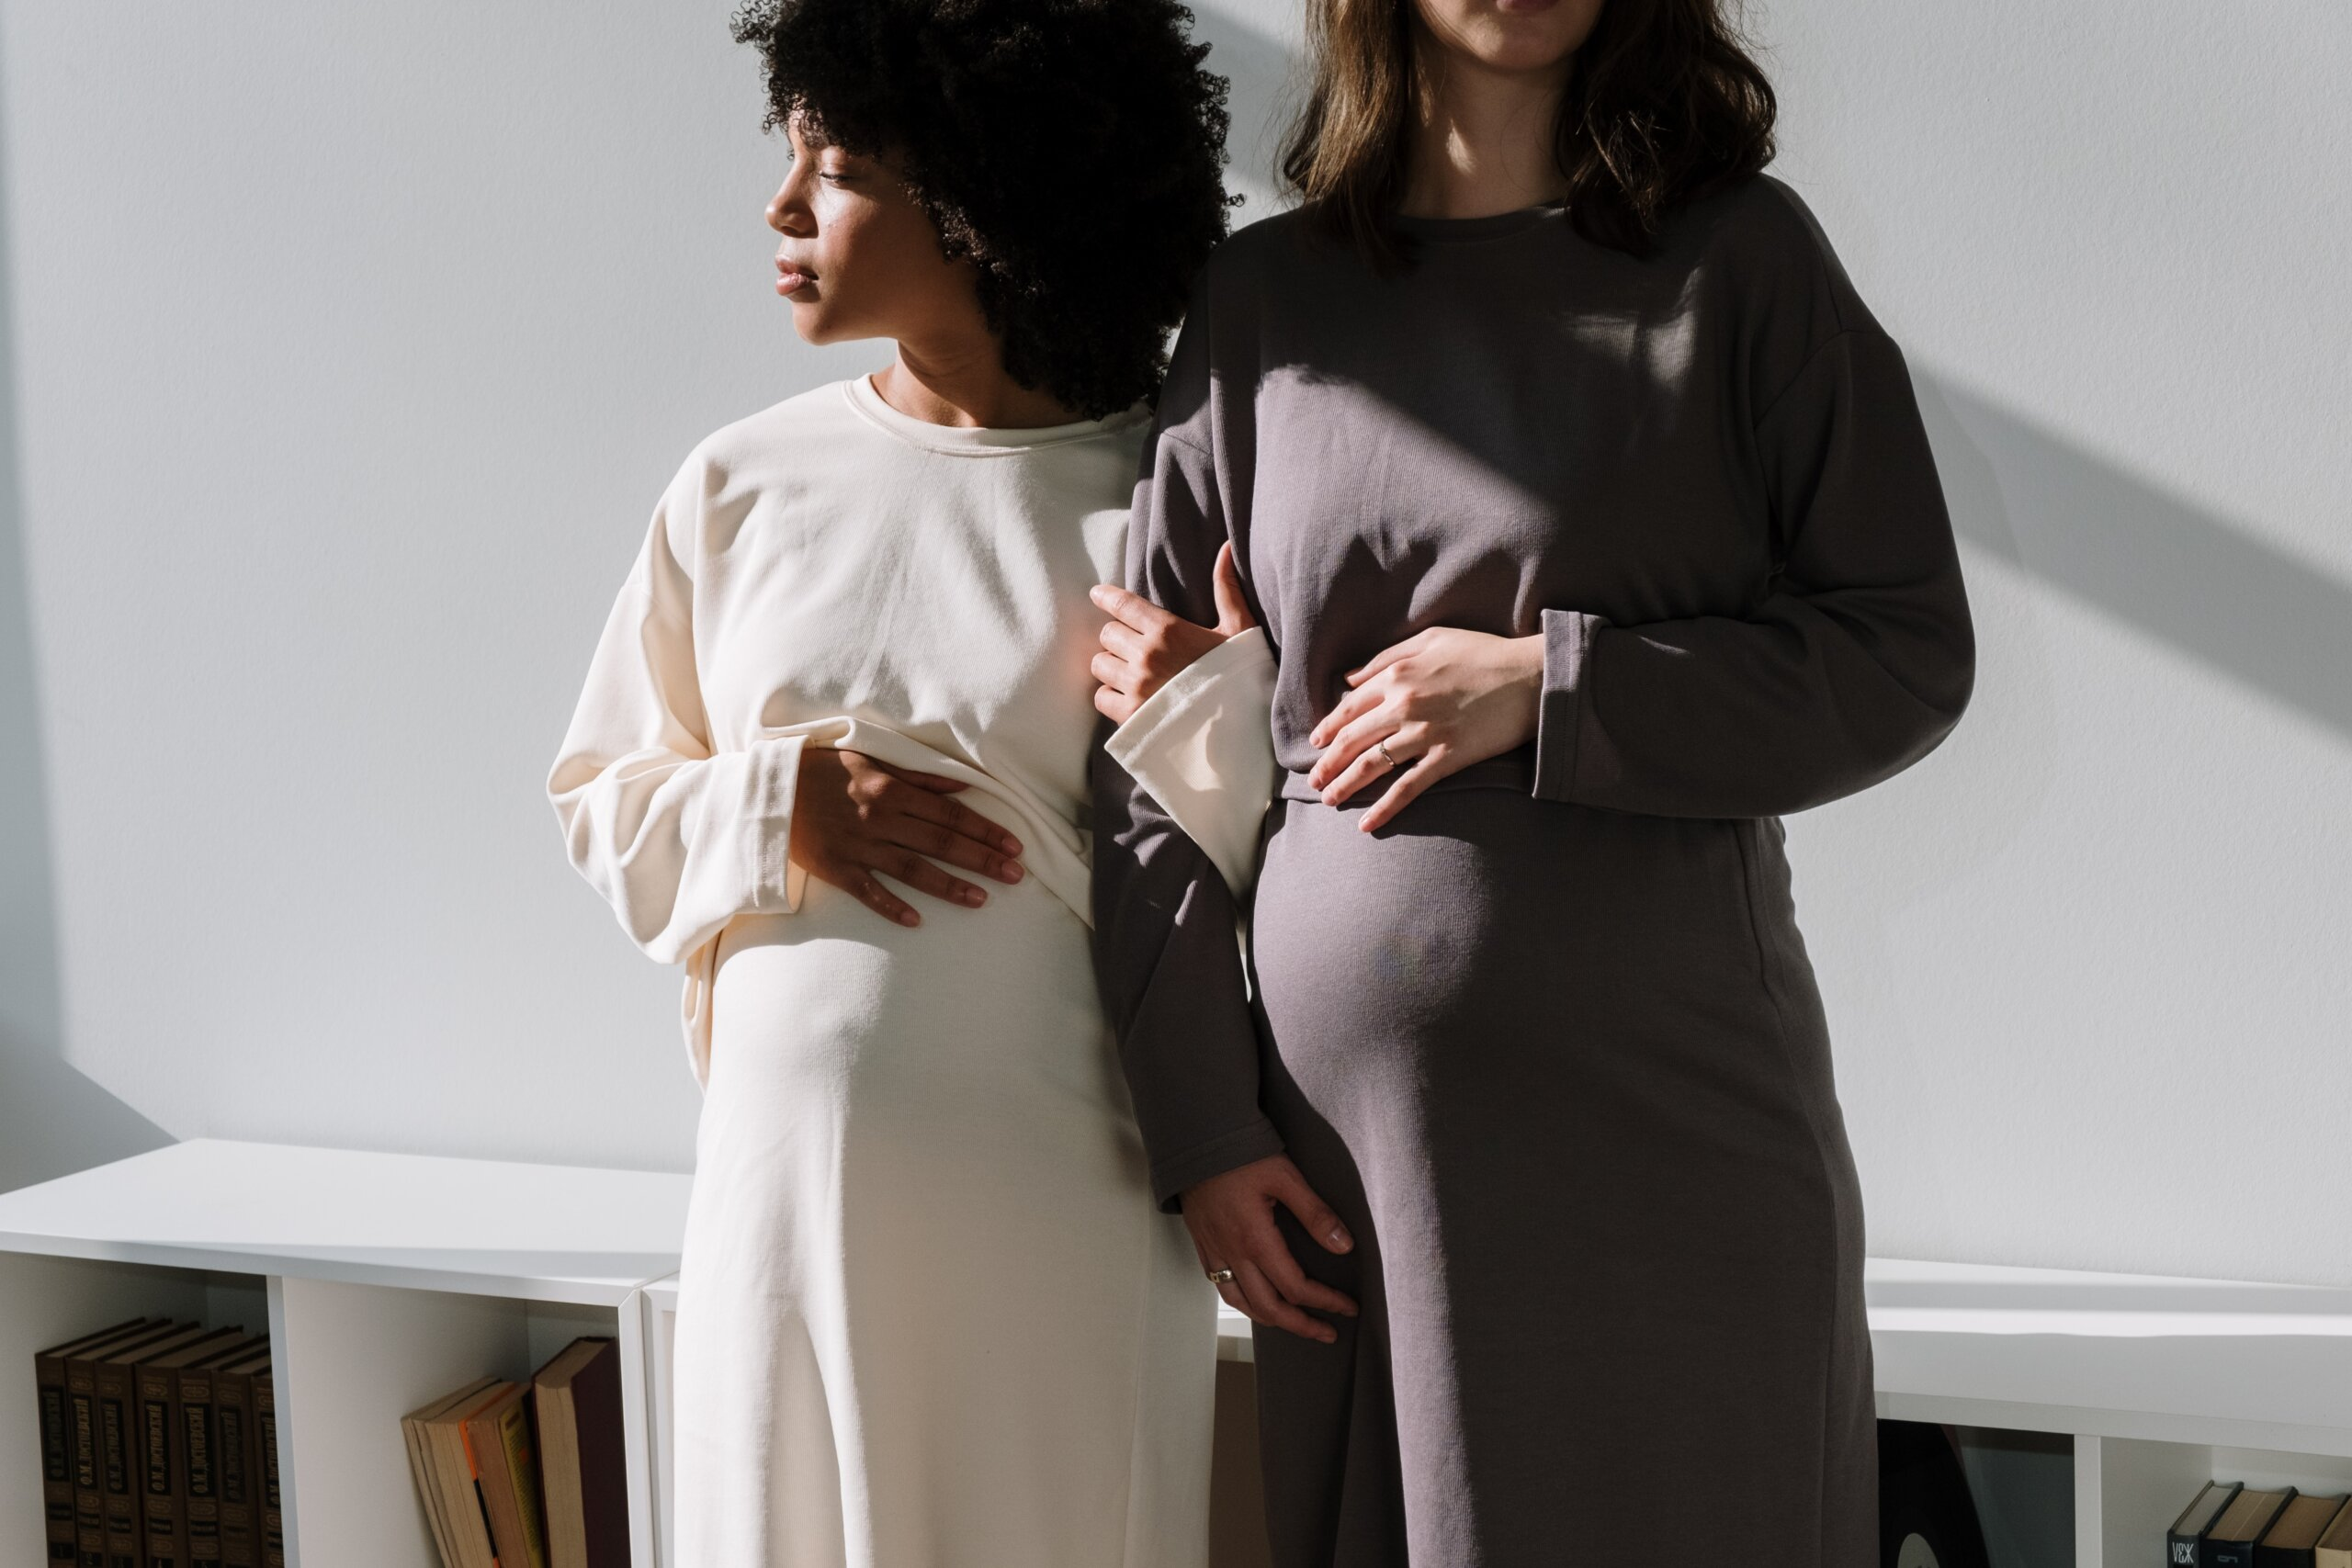 Pregnant woman in white dress with hand on her belly linking arms with pregnant woman in dark purple dress with hand on her baby bump